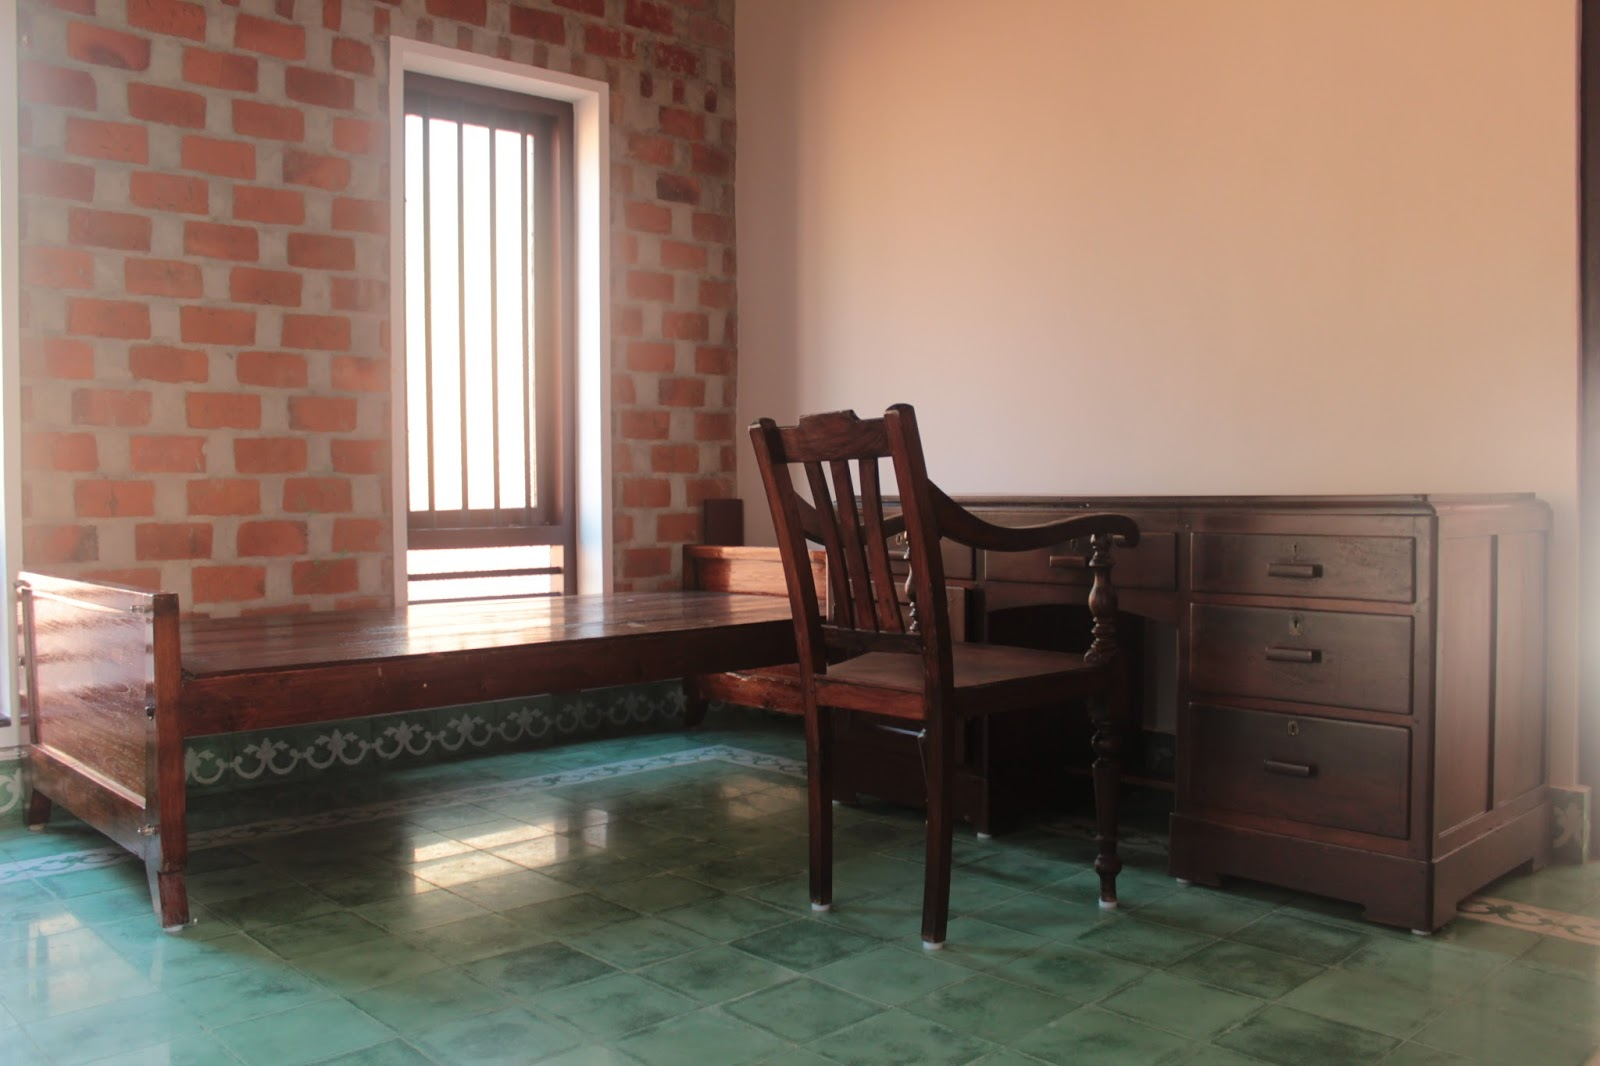 Jorgie Lawyers Blog Our Green Baker Home Built By Costford At House Wiring Materials Kerala One Paved Wall In The Guest Bedroom Patch Pointing On Other Athangudi Tiles Floor